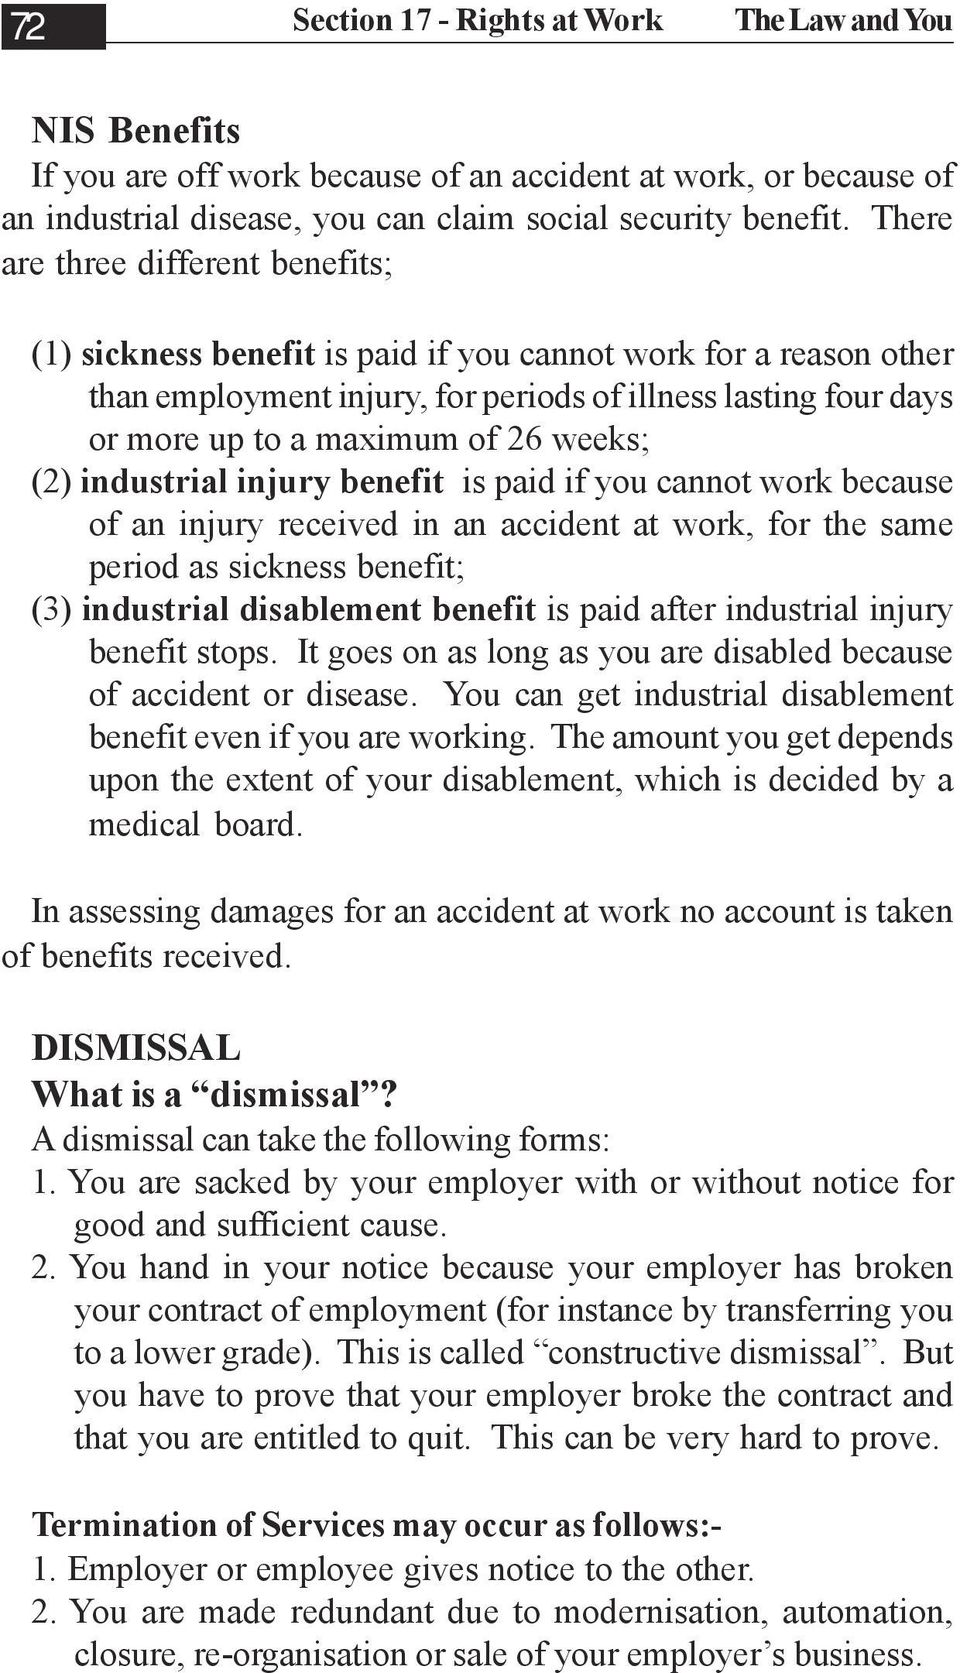 weeks; (2) industrial injury benefit is paid if you cannot work because of an injury received in an accident at work, for the same period as sickness benefit; (3) industrial disablement benefit is